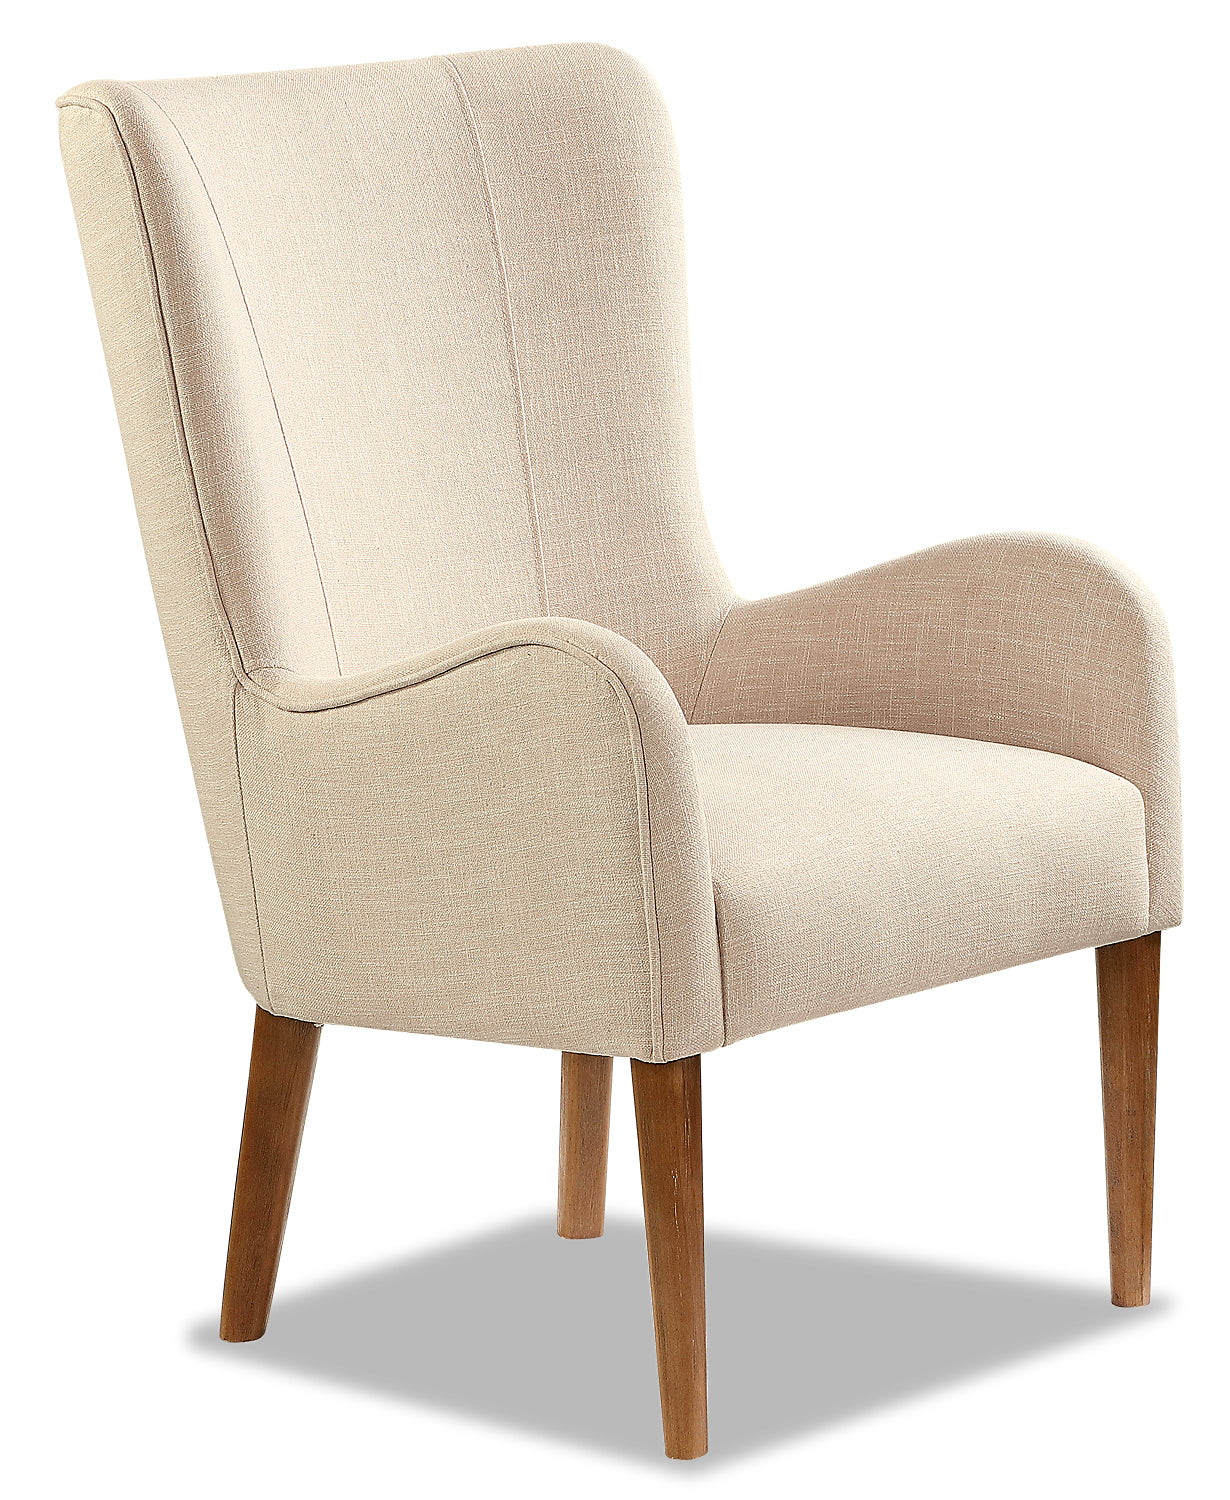 Lydia Wing Dining Chair White